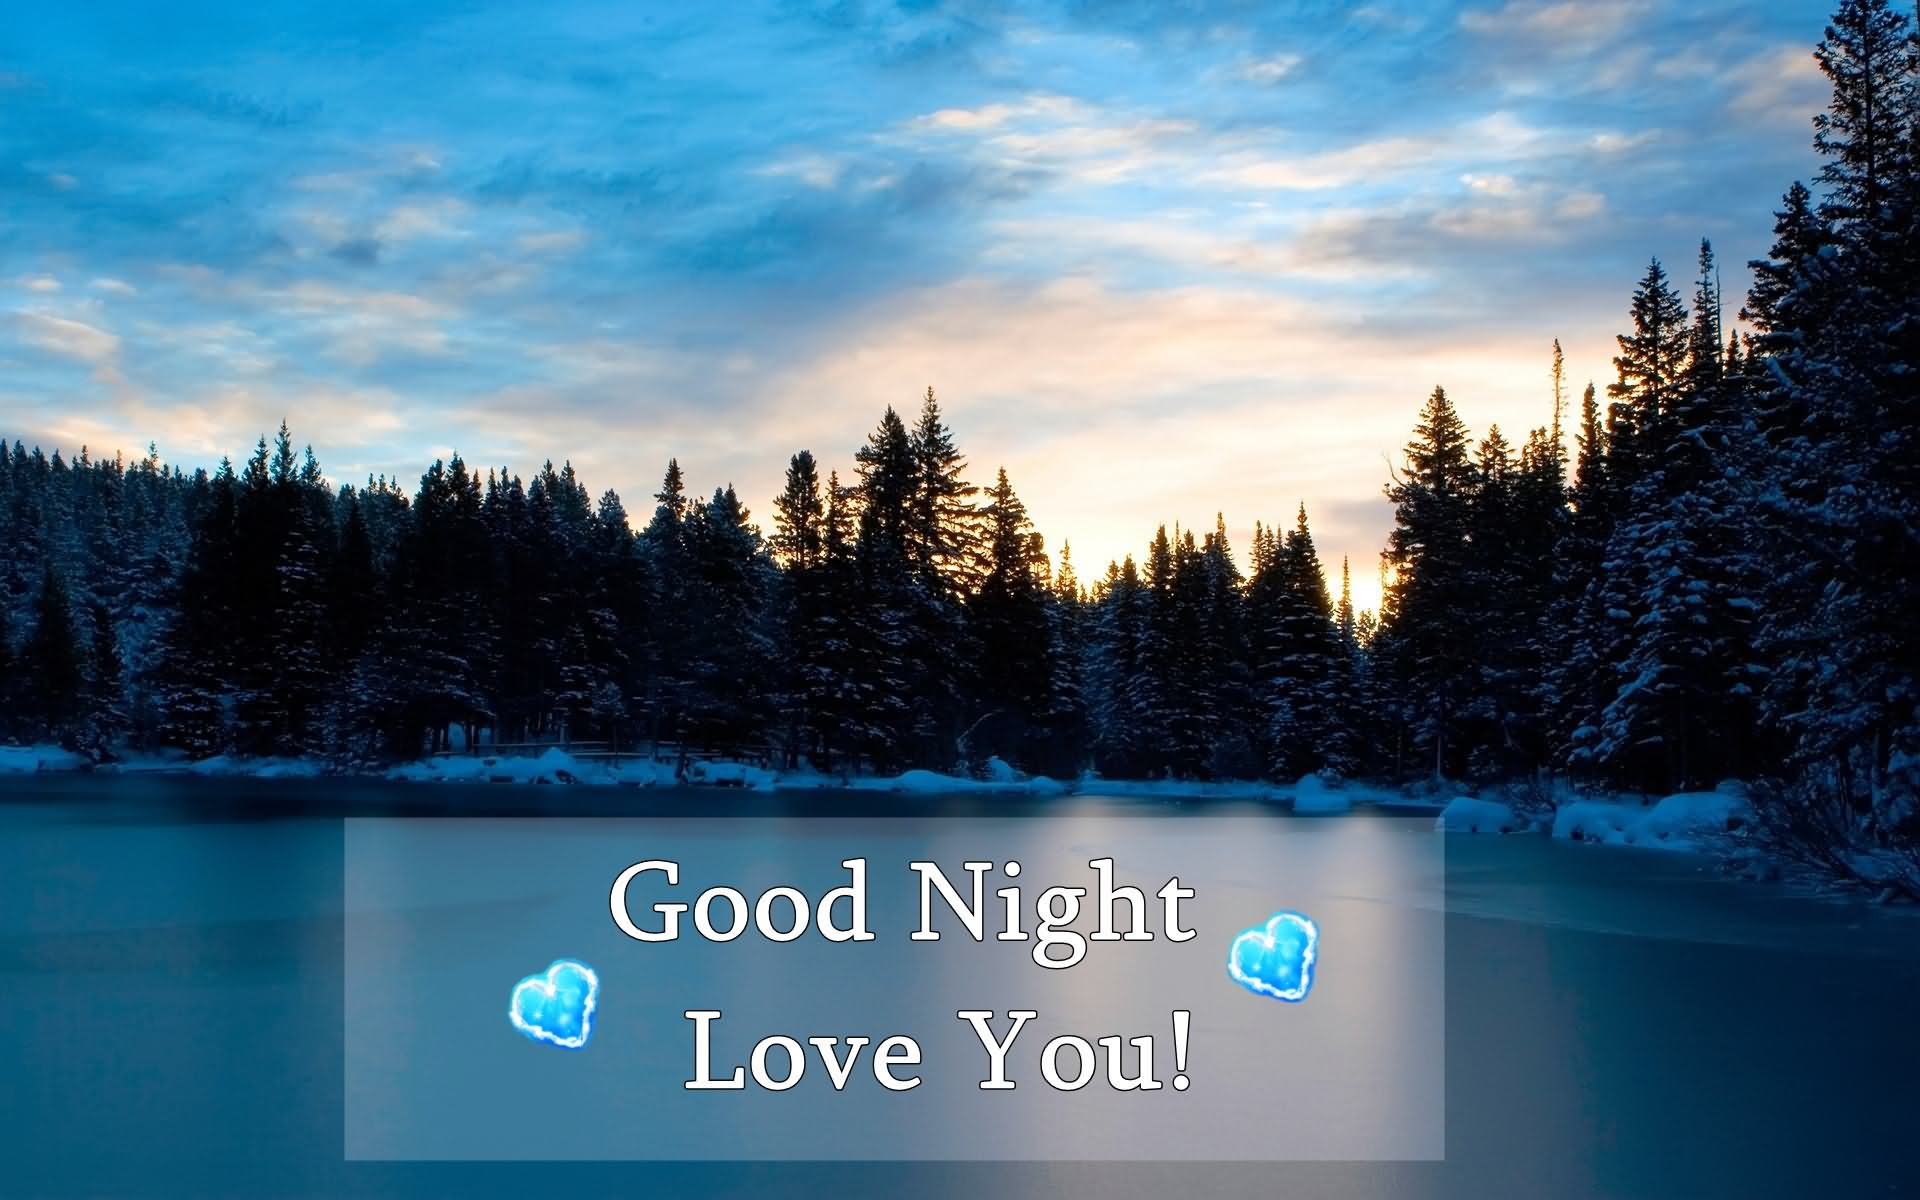 Wallpaper Good Night Love You : 15 Awesome Good Night Love Images